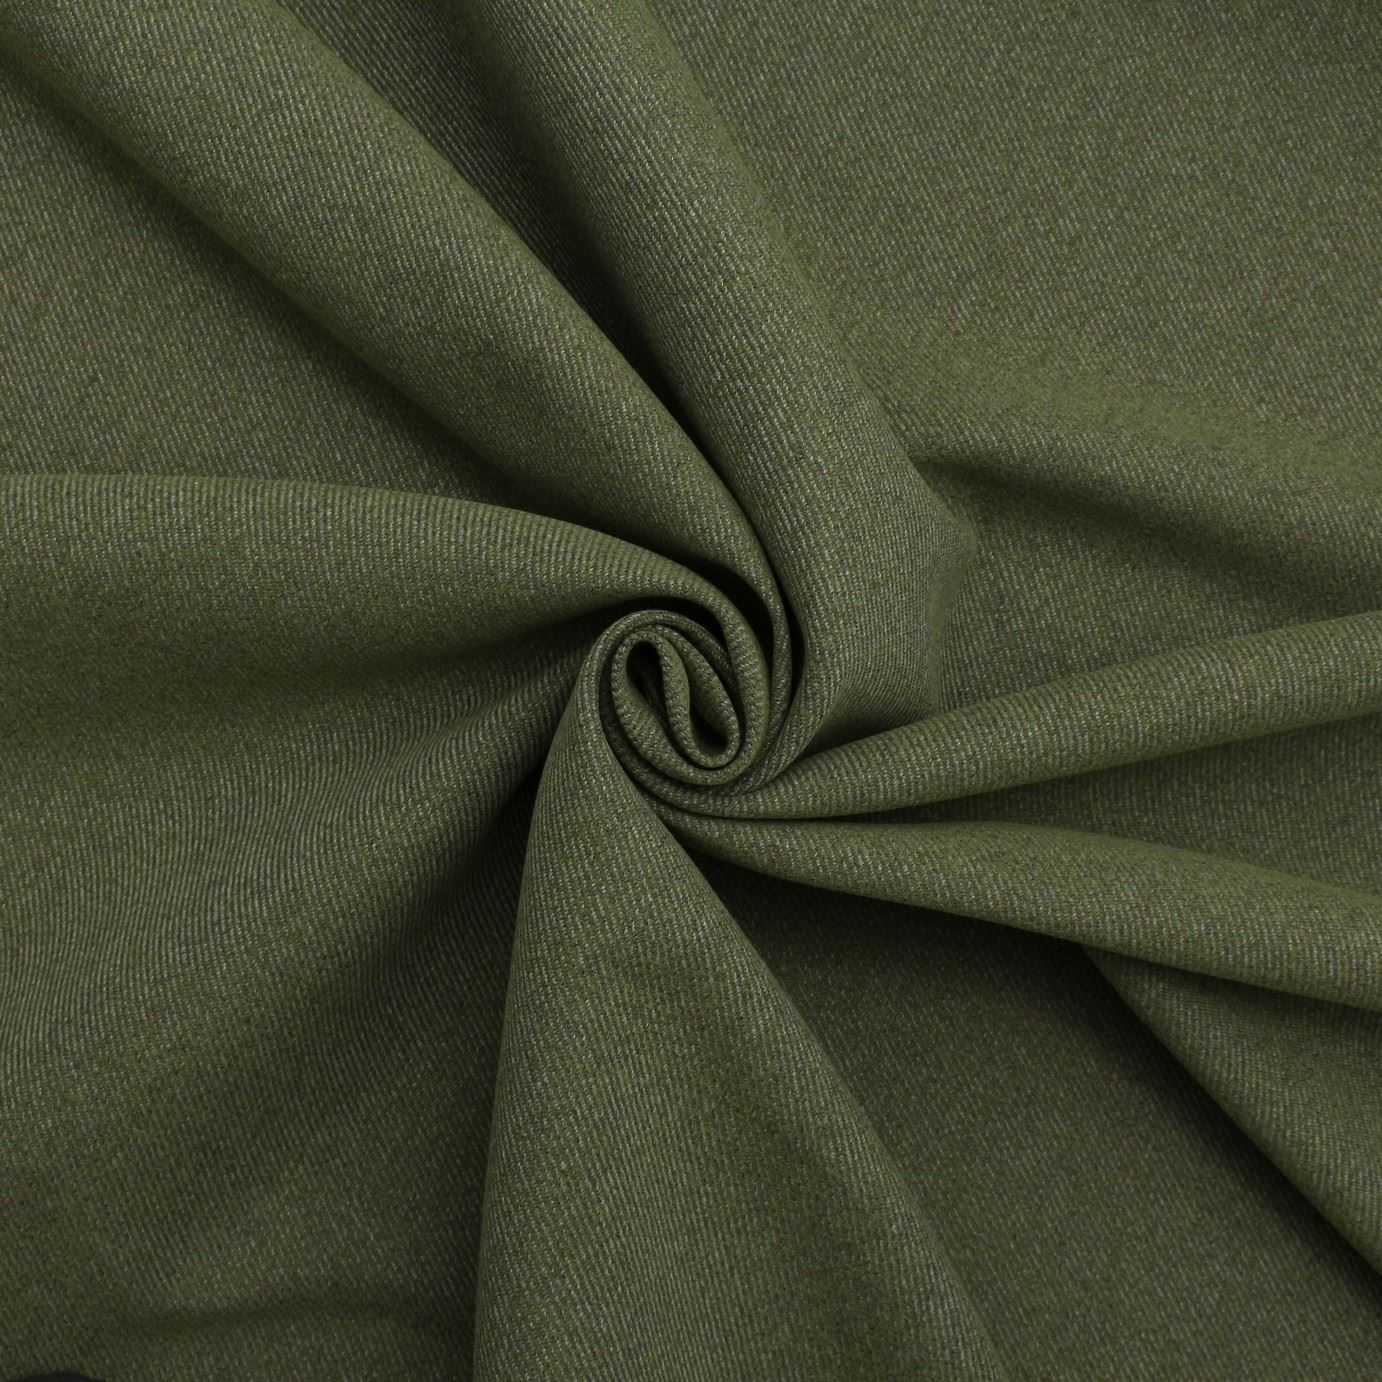 thumbnail 16 - TRADITIONAL TWILL WEAVE SOFT PLAIN FURNISHING COTTON FAUX WOOL UPHOLSTERY FABRIC